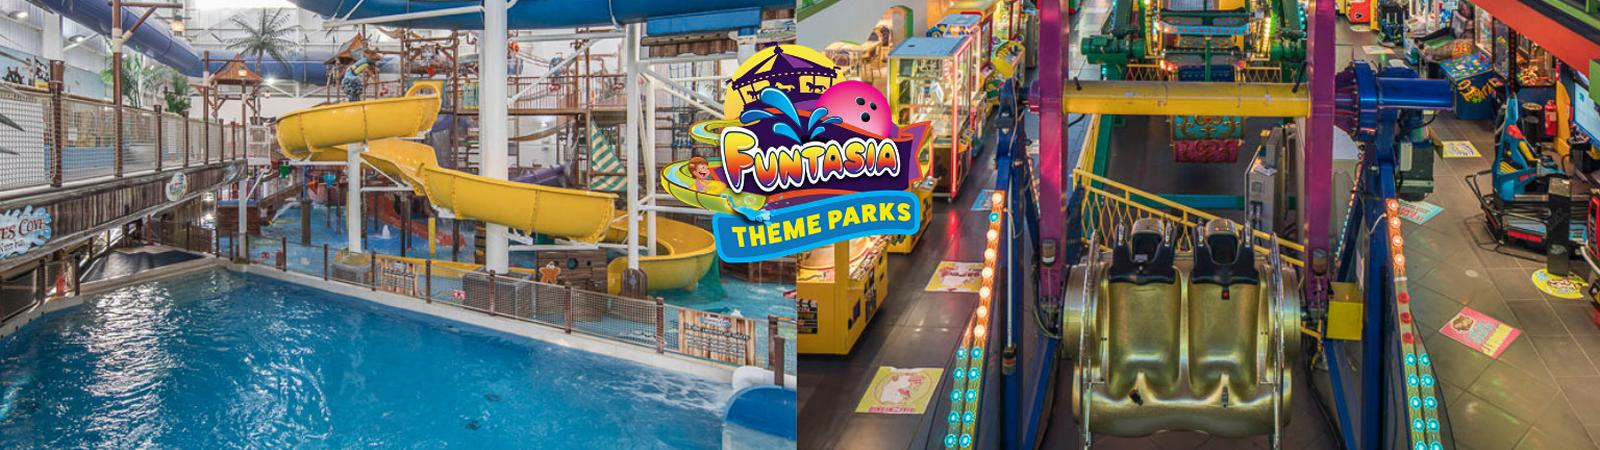 careers in Funtasia Theme Parks